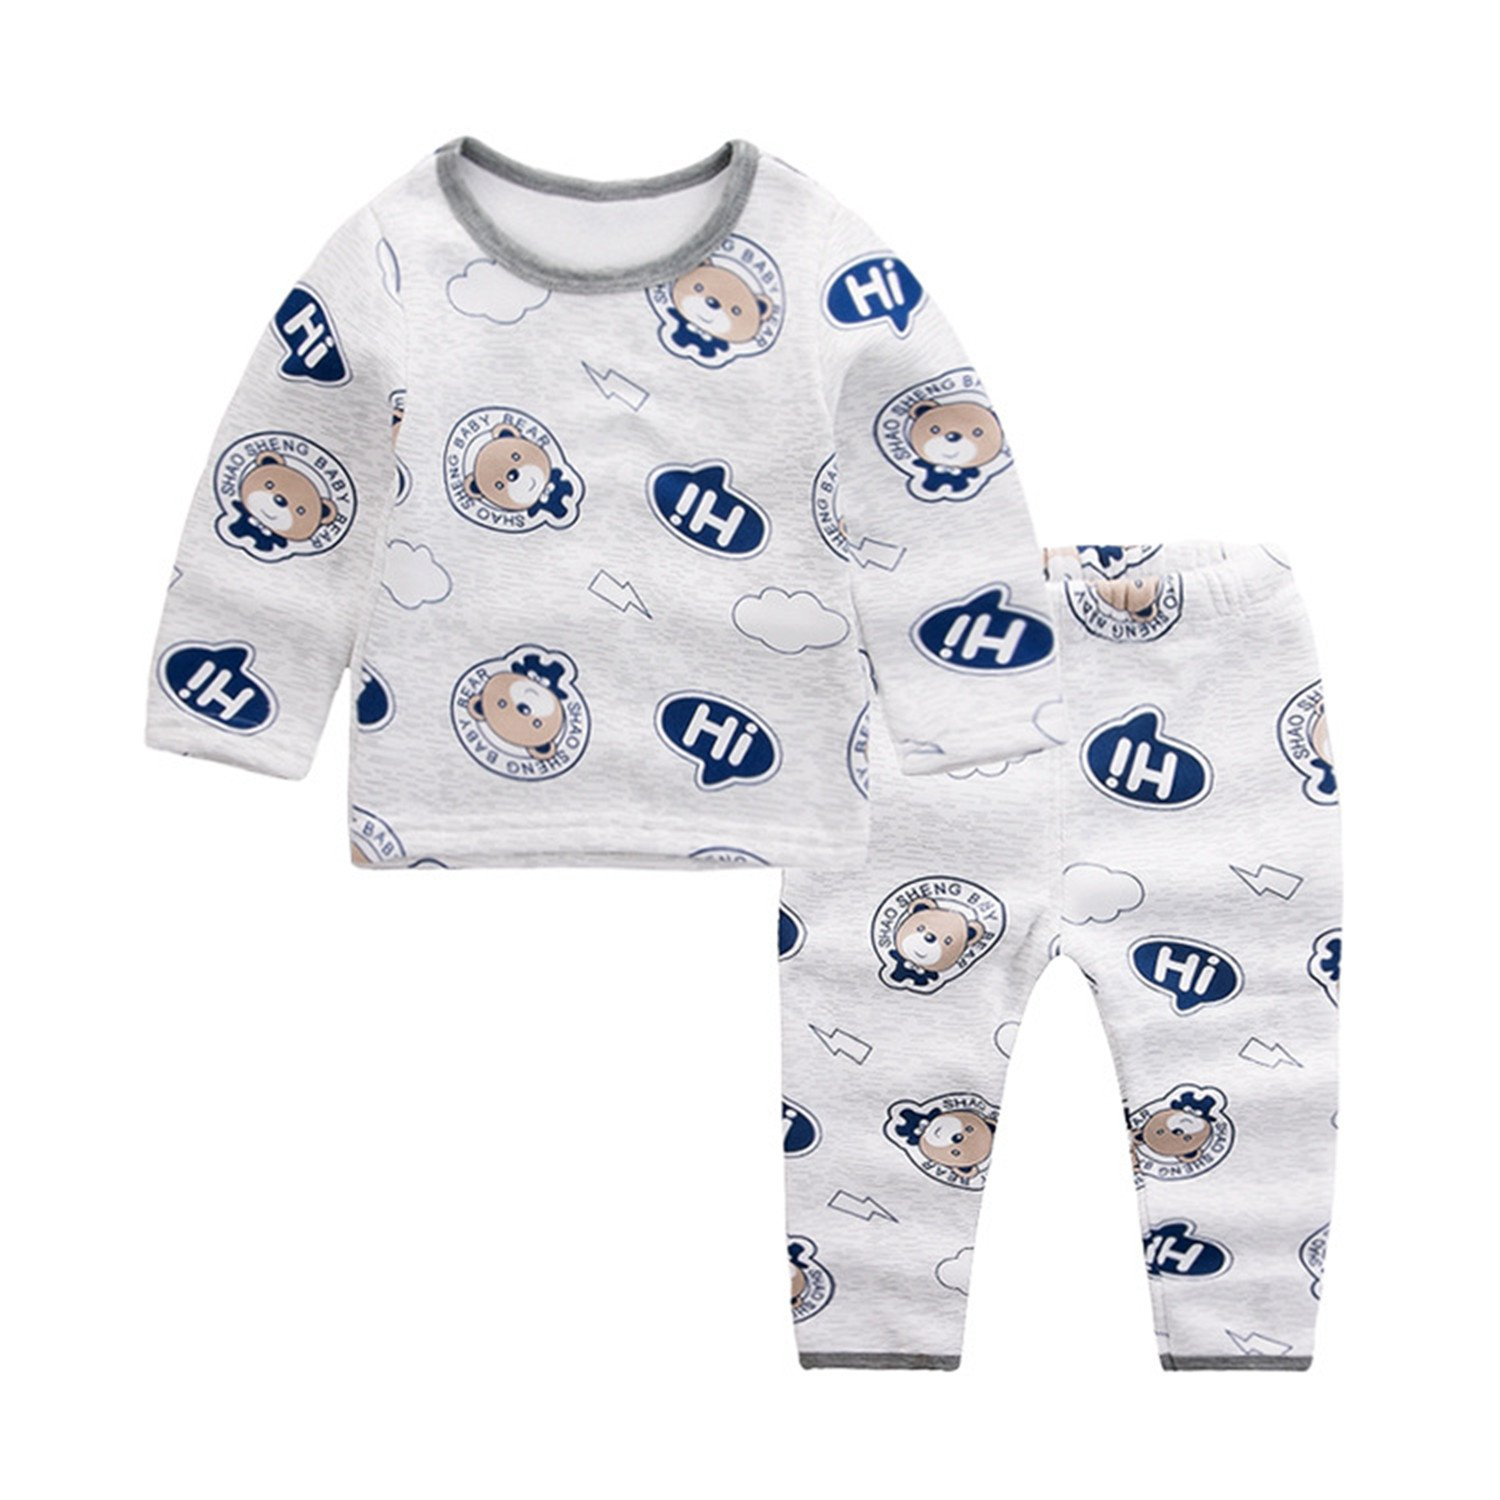 YADEER Little Boys Thermal Underwear Top and Bottom Set 1702FA03010